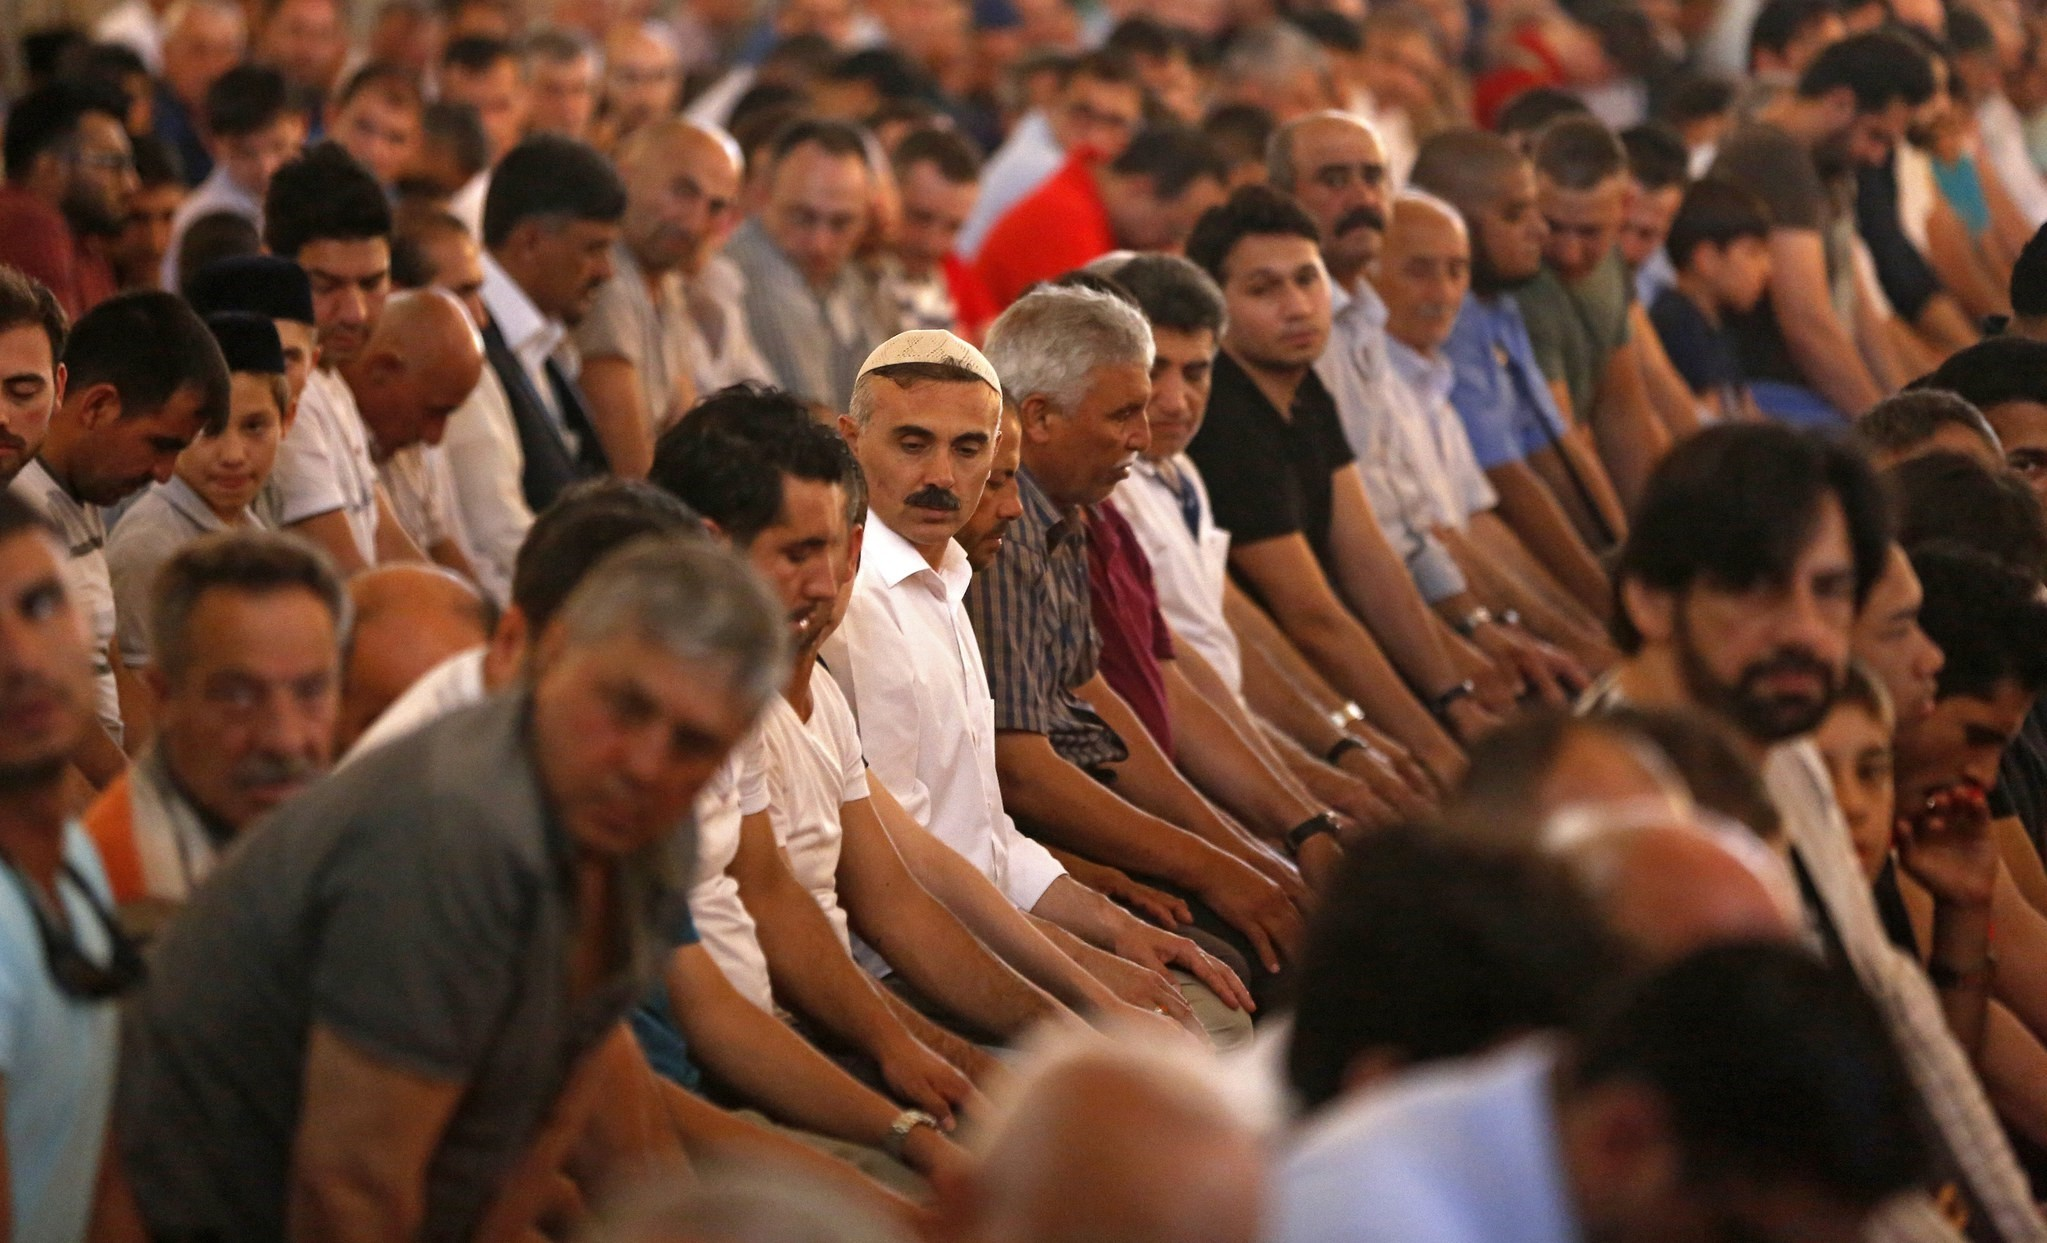 Turkish Muslims attend the last Friday prayer of the holy fasting month of Ramadan at Sultanahmet Mosque in Istanbul, Turkey, 23 June 2017. (EPA Photo)